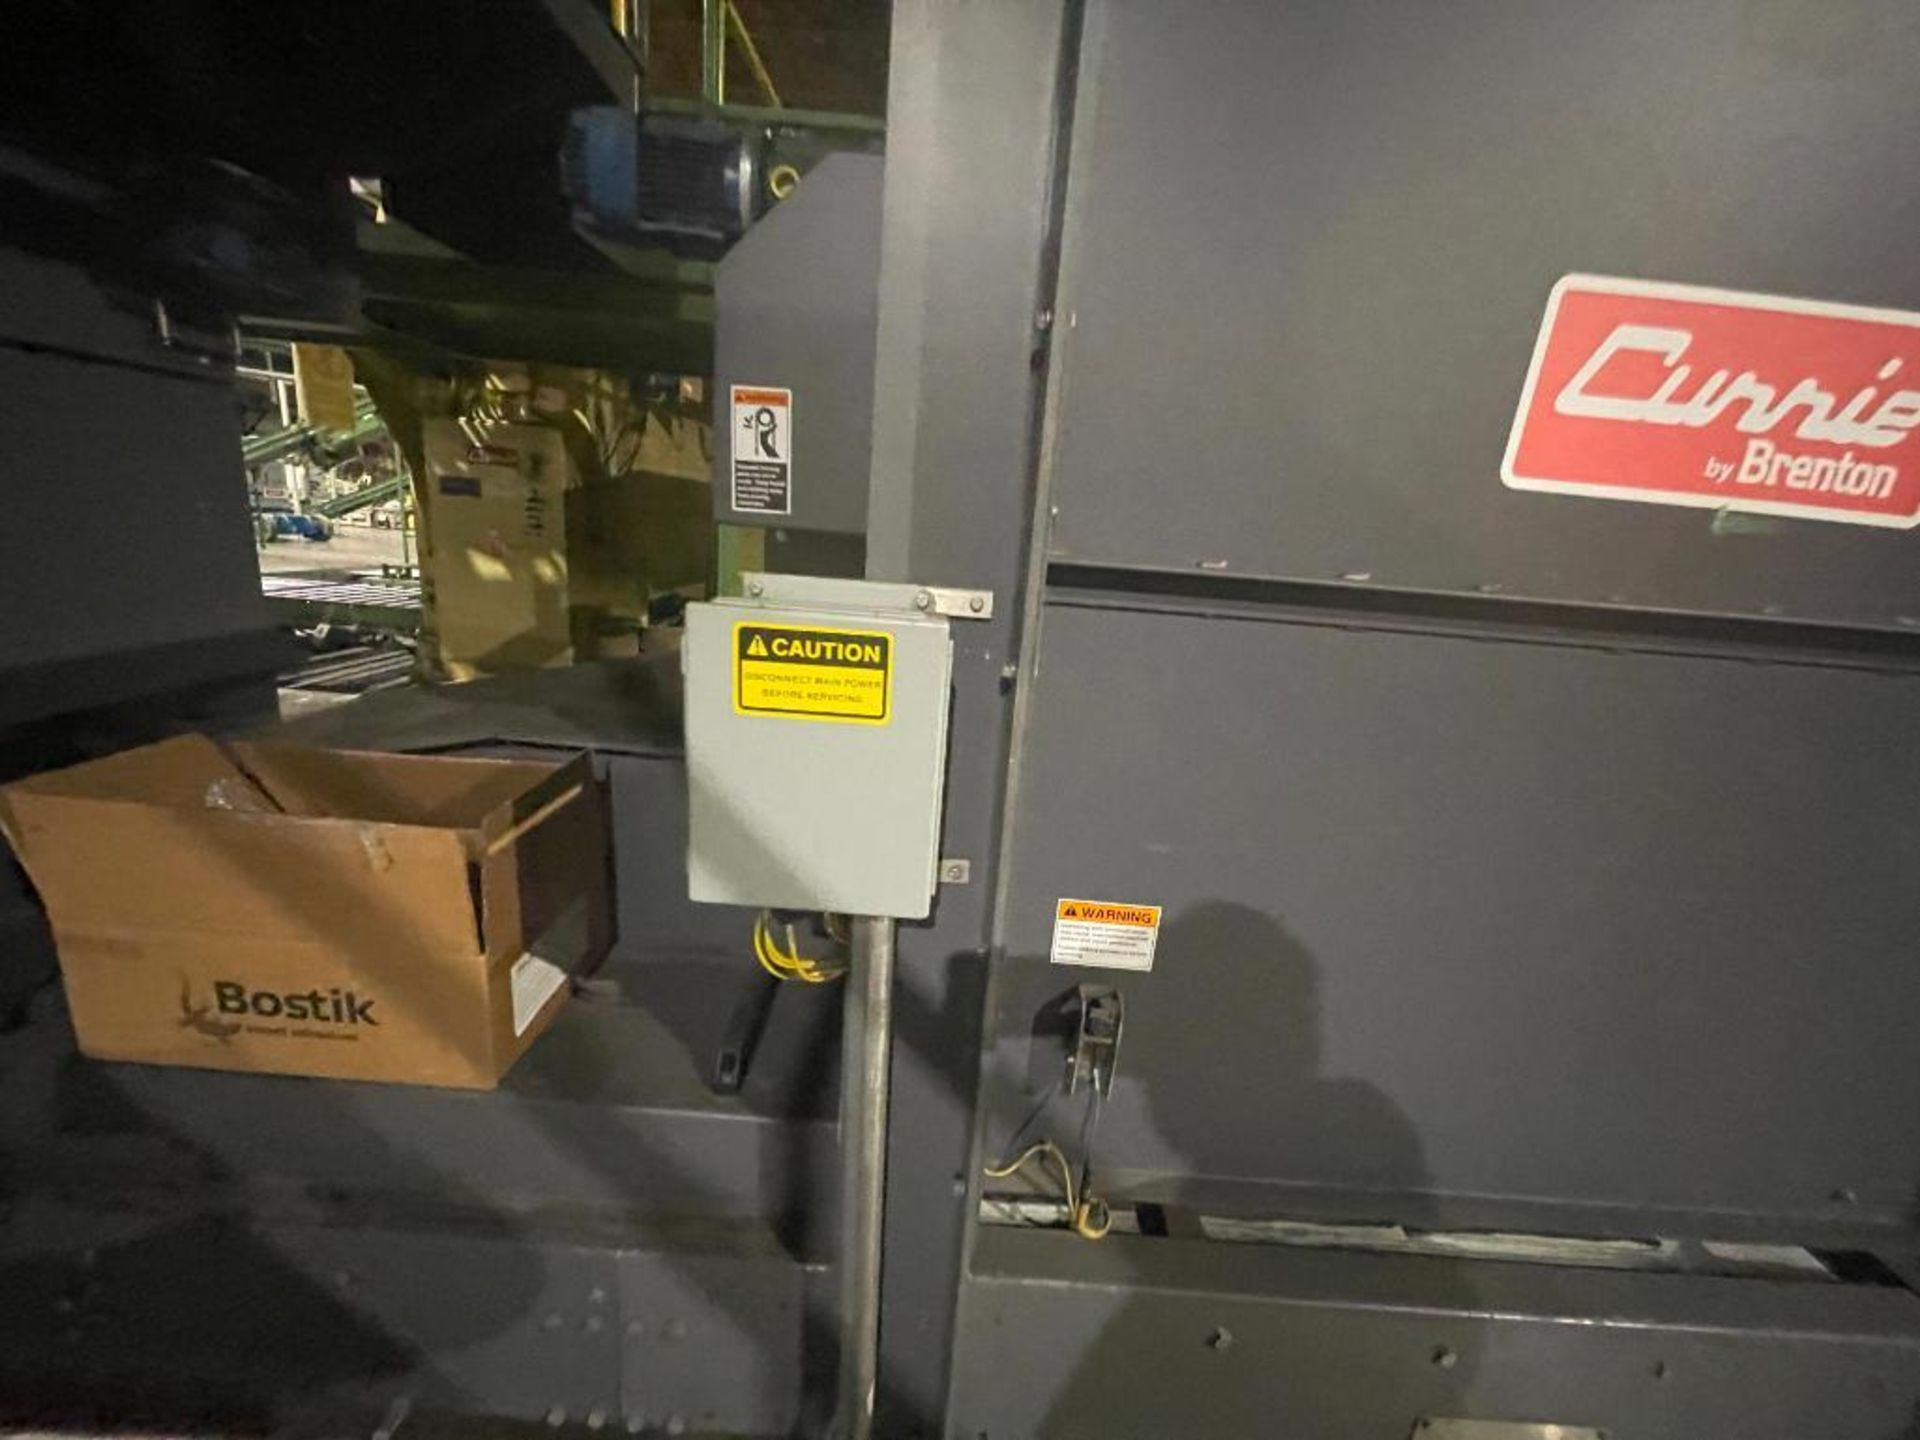 2008 Currie top to bottom palletizer, model PALLETIZER, sn 3348 - Image 6 of 28